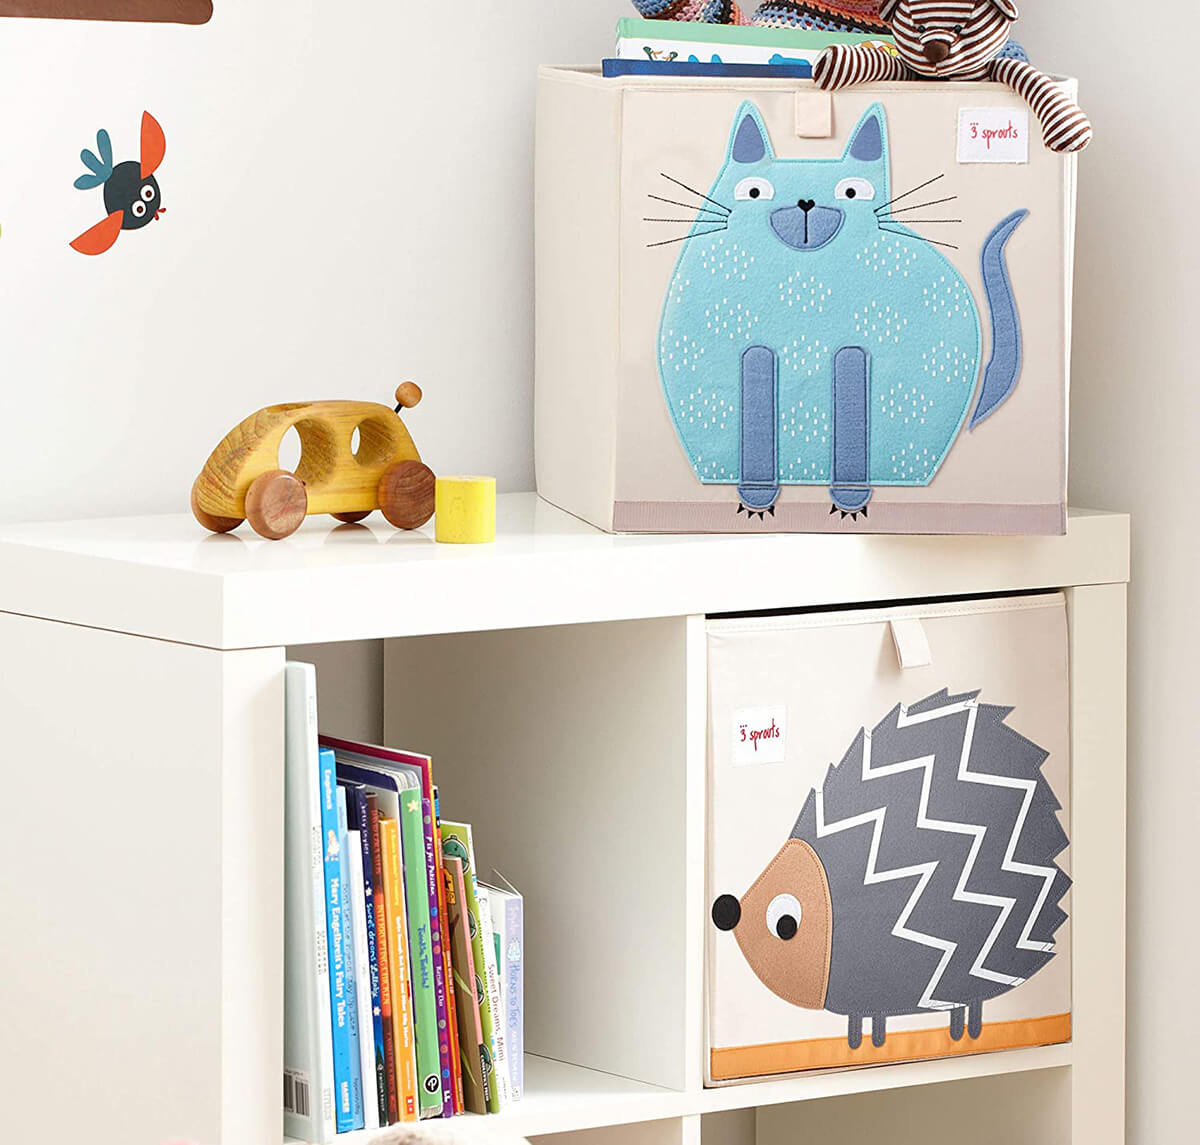 A Cute Cubed Storage Container for Kids